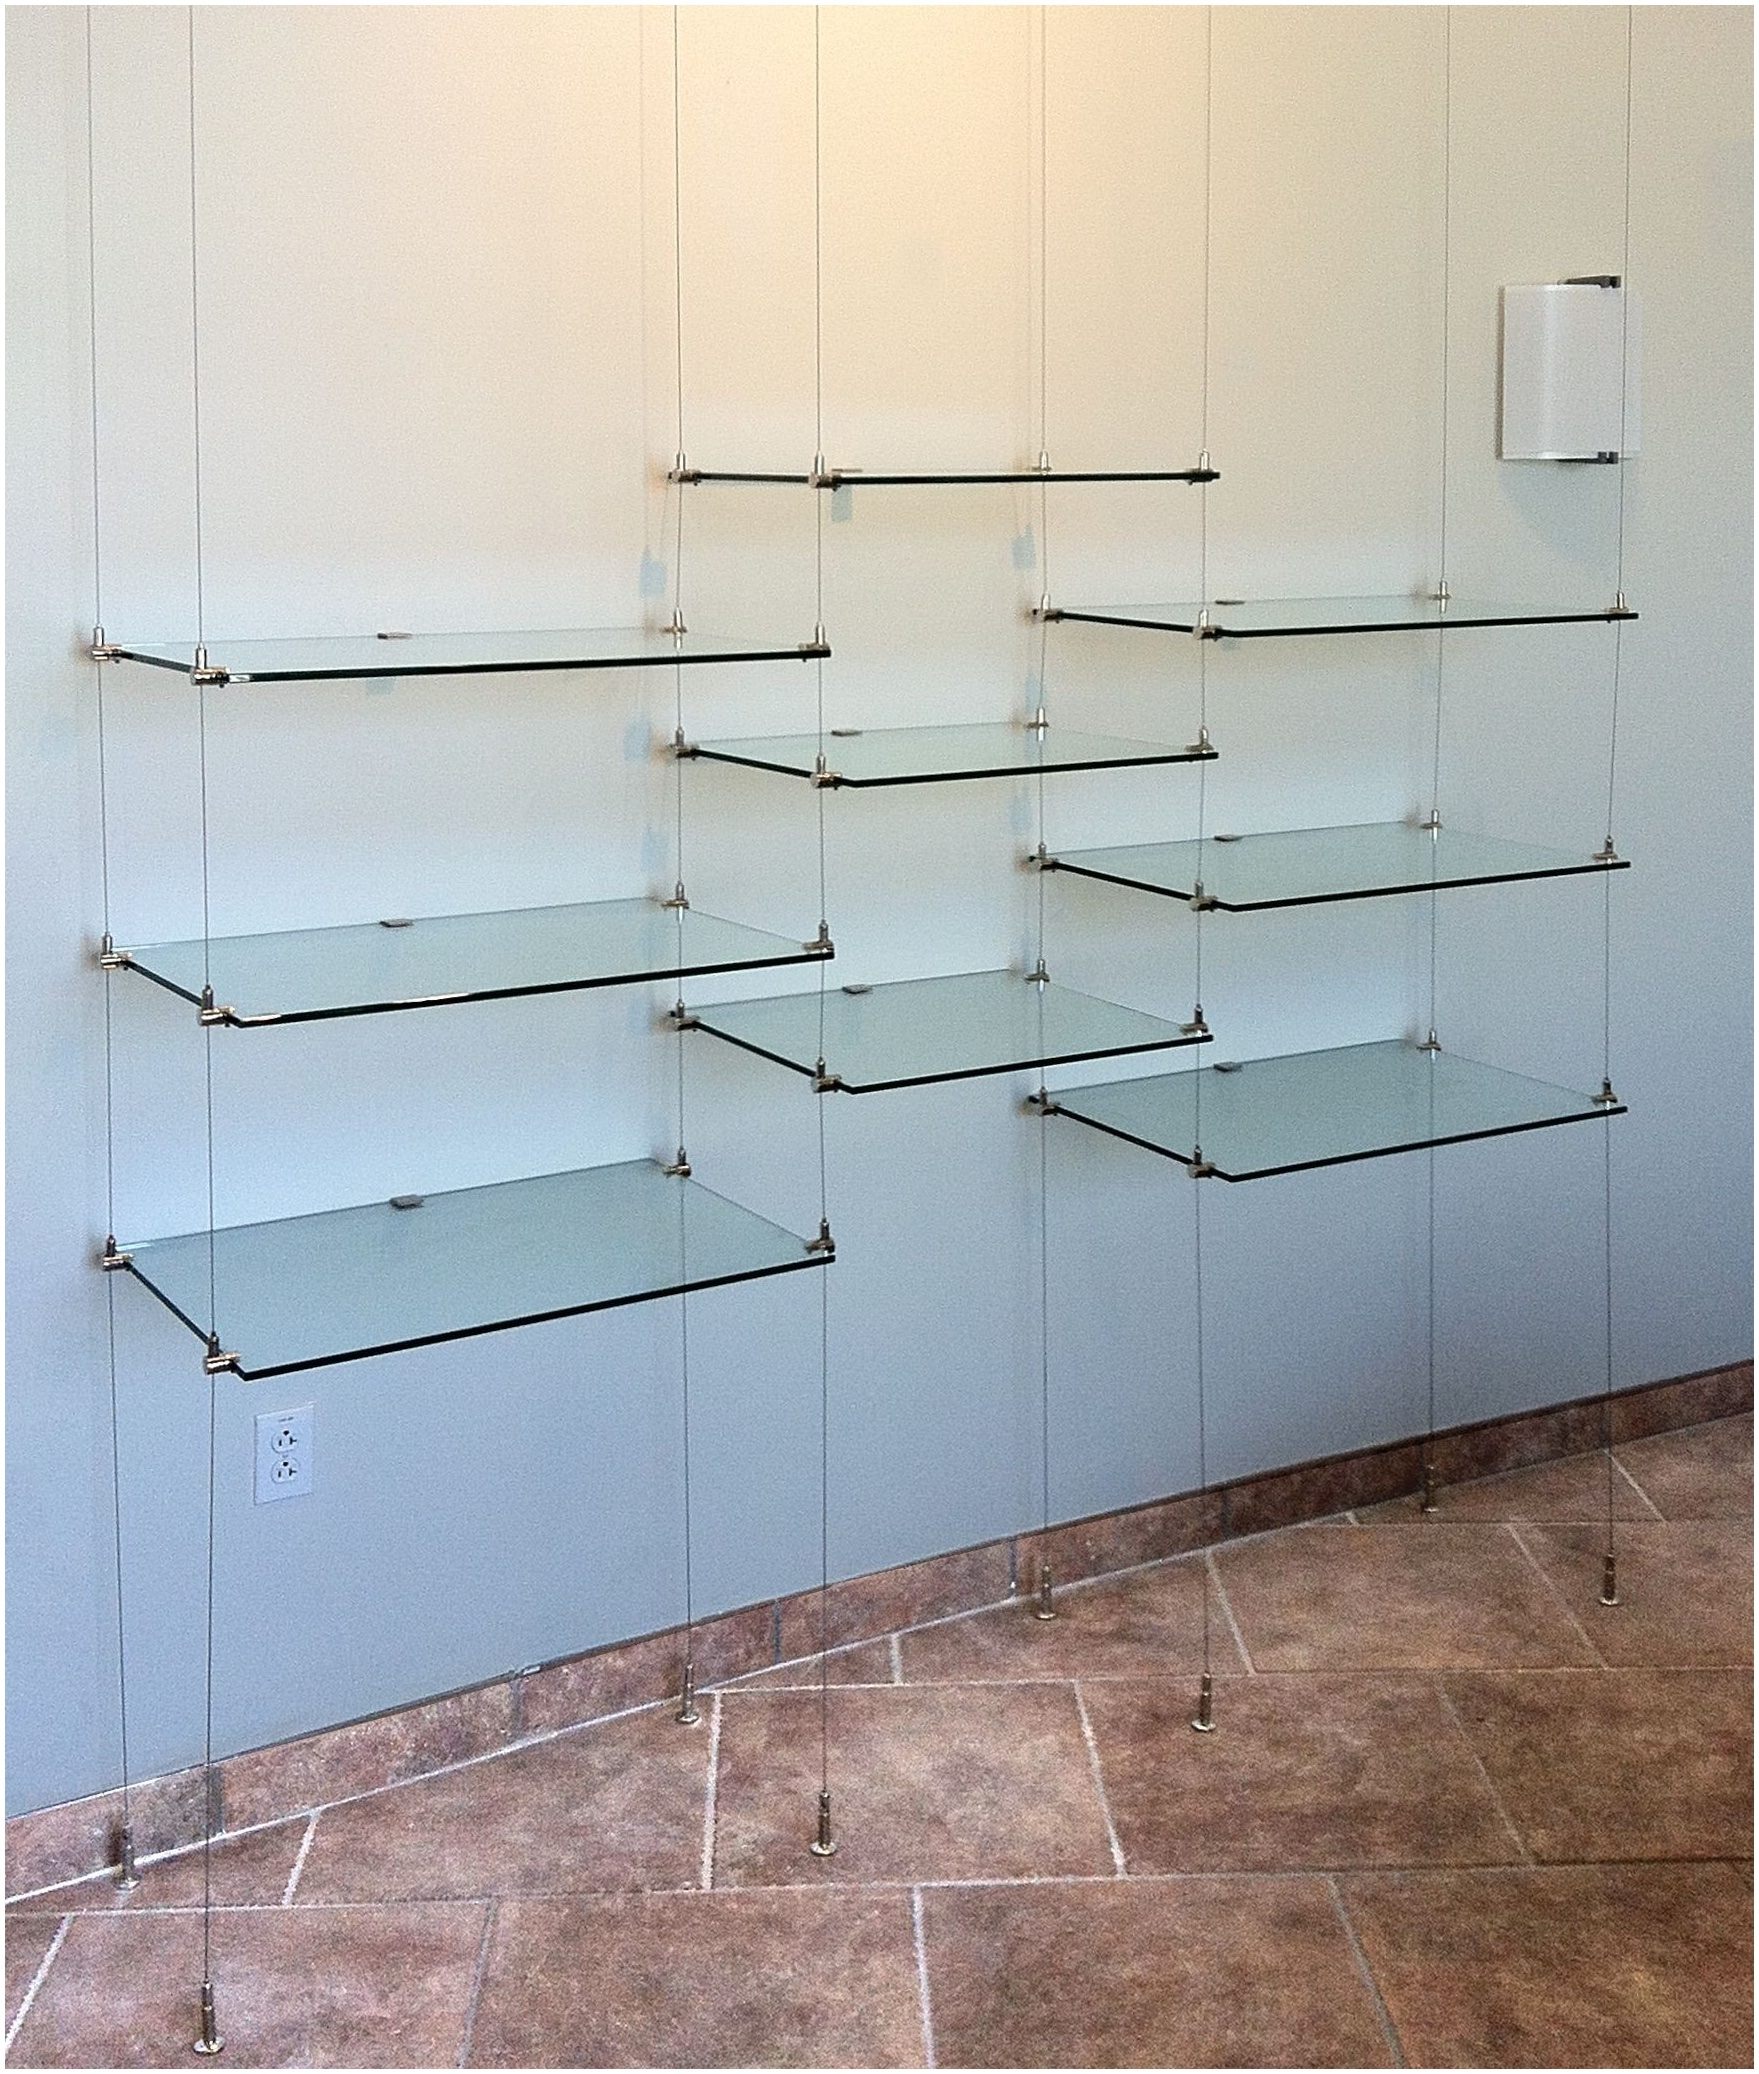 Suspended Glass Shelving Systems Design Modern Shelf Storage And With Regard To Glass Shelf Cable Suspension System (#14 of 15)